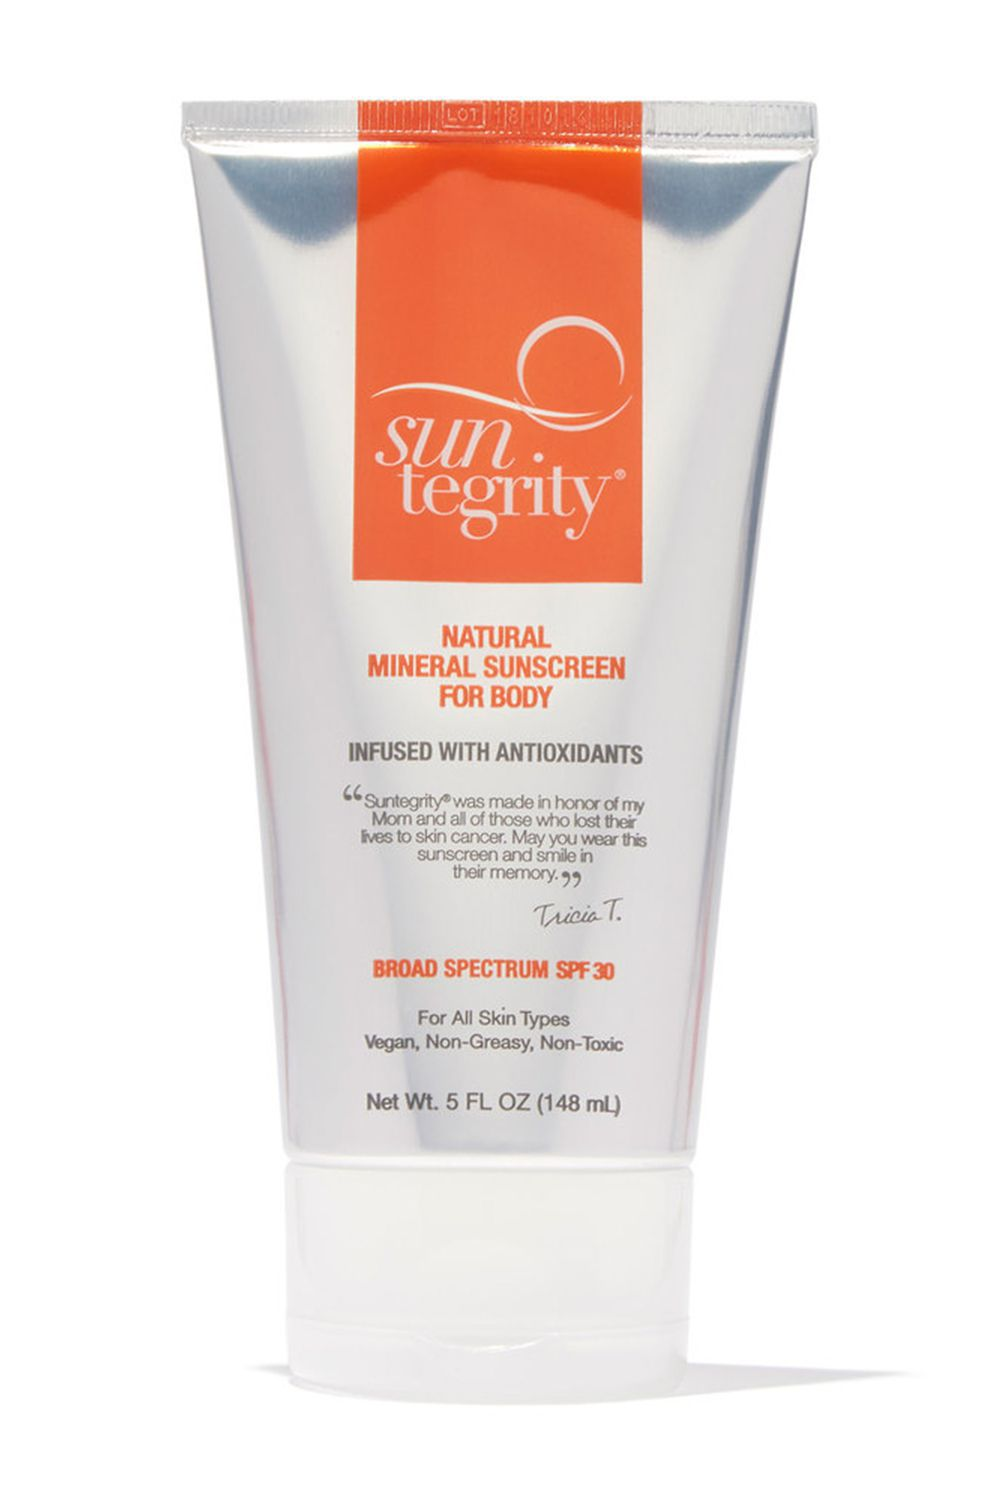 Suntegrity Natural Mineral Sunscreen For Body